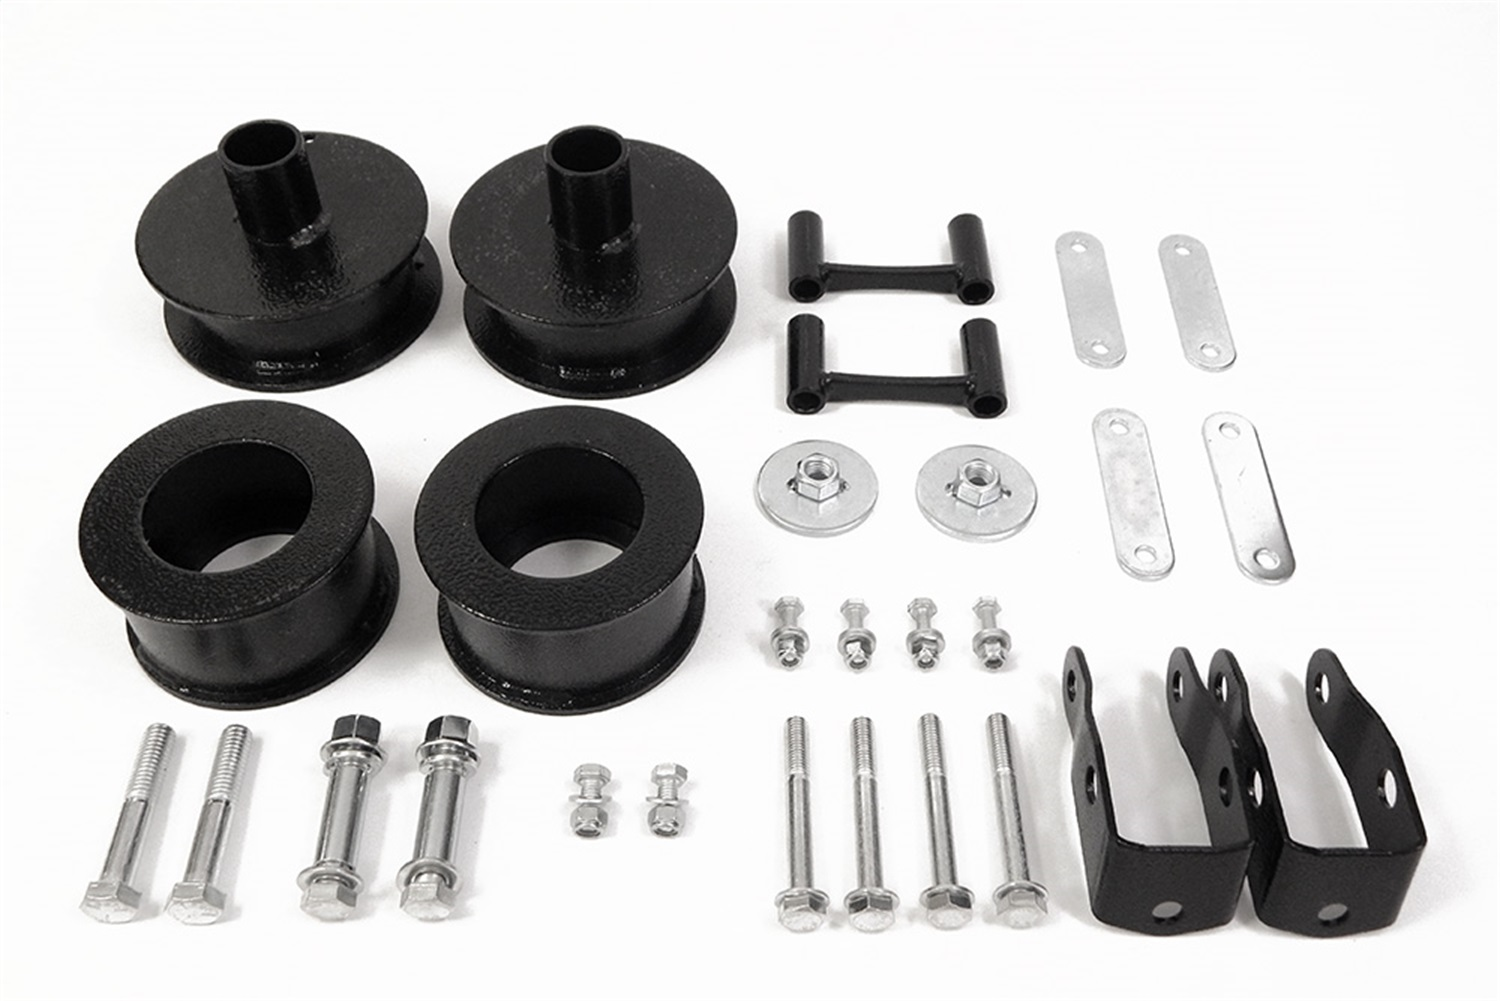 Iconic Accessories 611-5801 2.5 in. Suspension Lift Kit Fits 07-18 Wrangler (JK)